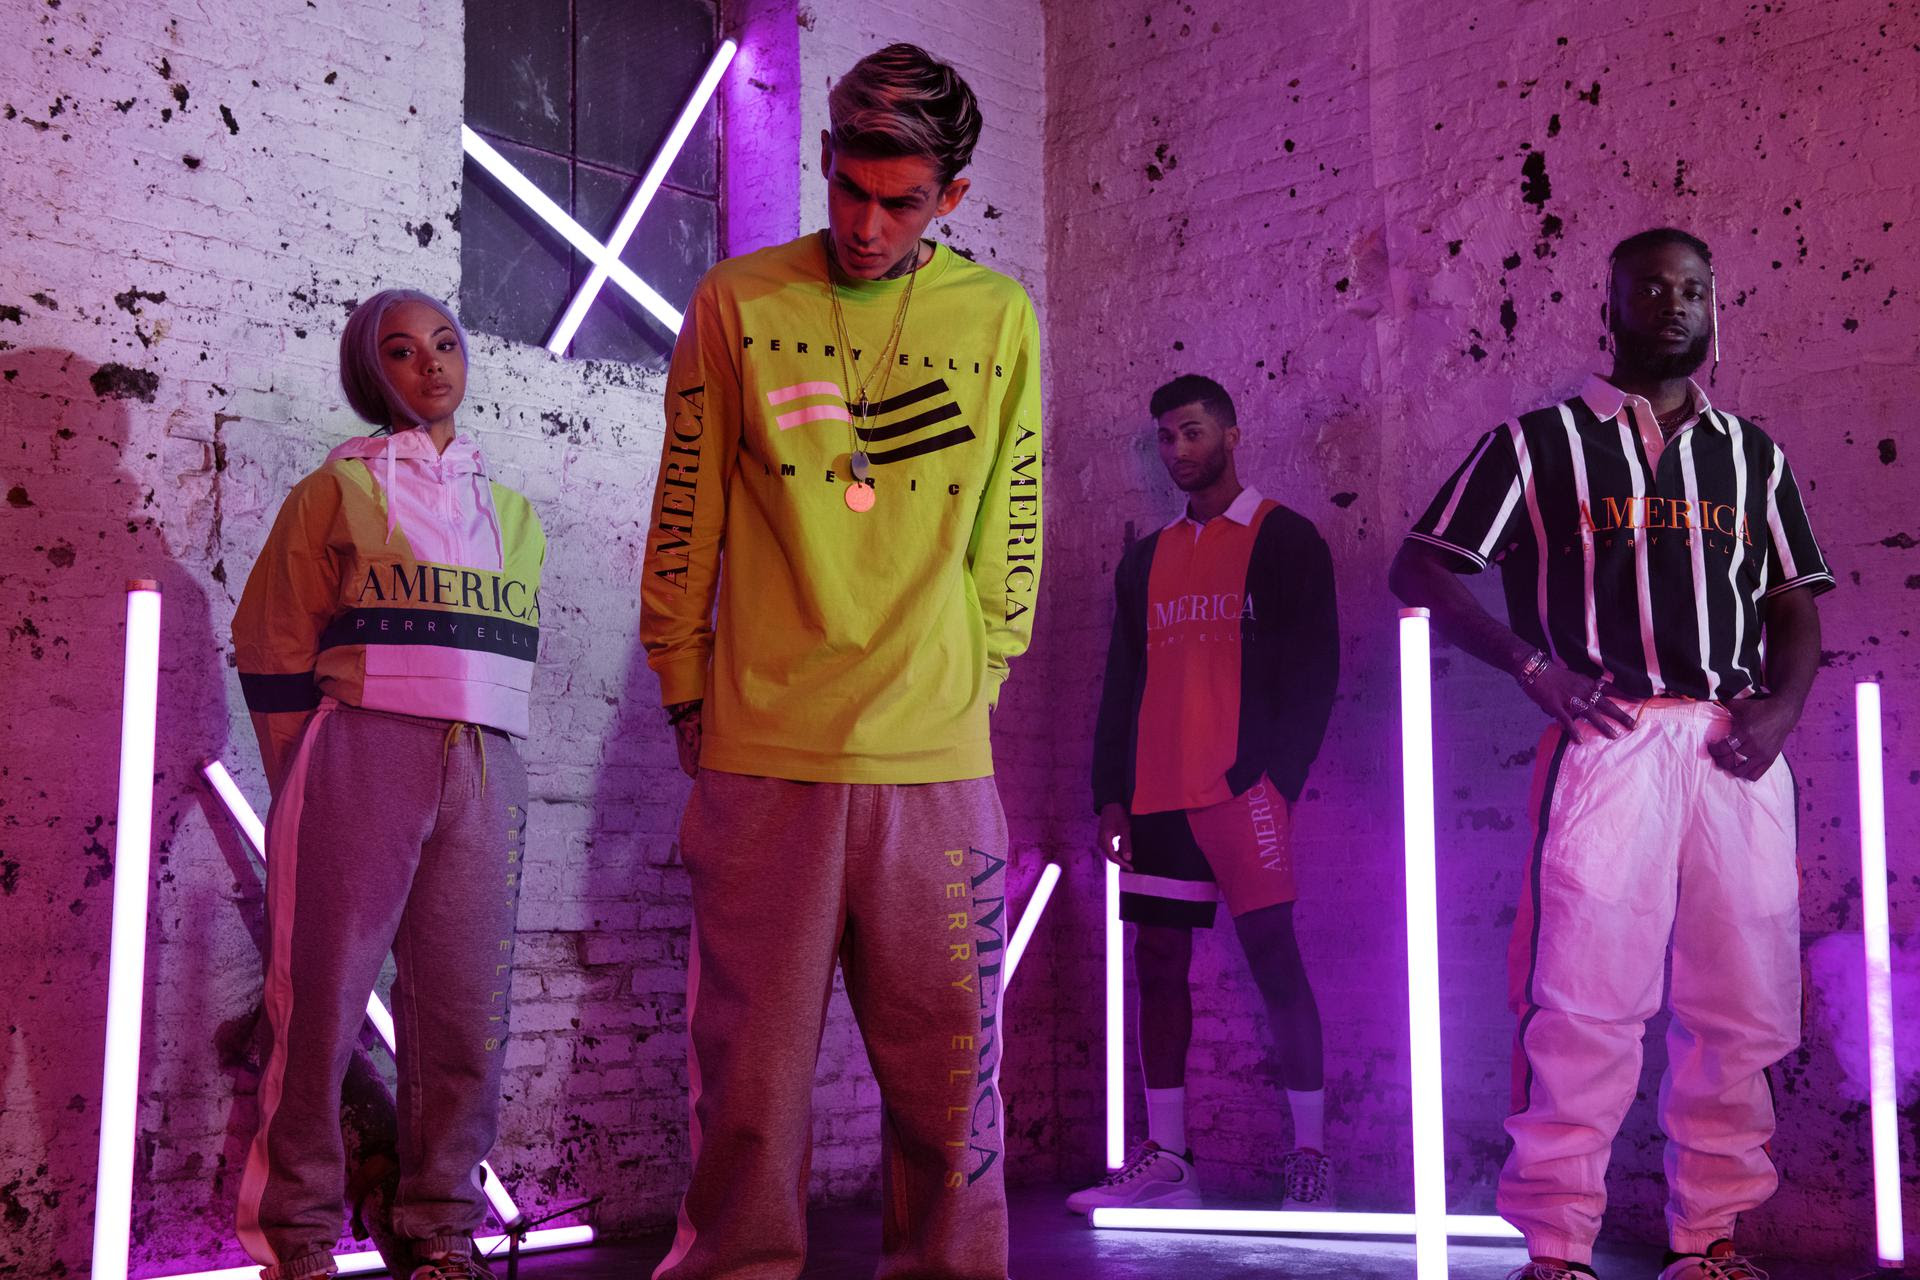 The unisex 90's pieces in 2.5 are more contemporary, with the entire capsule incorporating a washed neon and bright white colorway with yachting-inspired fabrications.  While the debut of Perry Ellis America was comprised strictly of replica pieces from the original 90's collection, 2.5 features redesigned classics that have been updated to create a more cohesive story that embodies the fun, bright mood of the spring season.    Perry Ellis America Capsule 2.5 will be available starting tomorrow at PerryEllisAmerica.com .